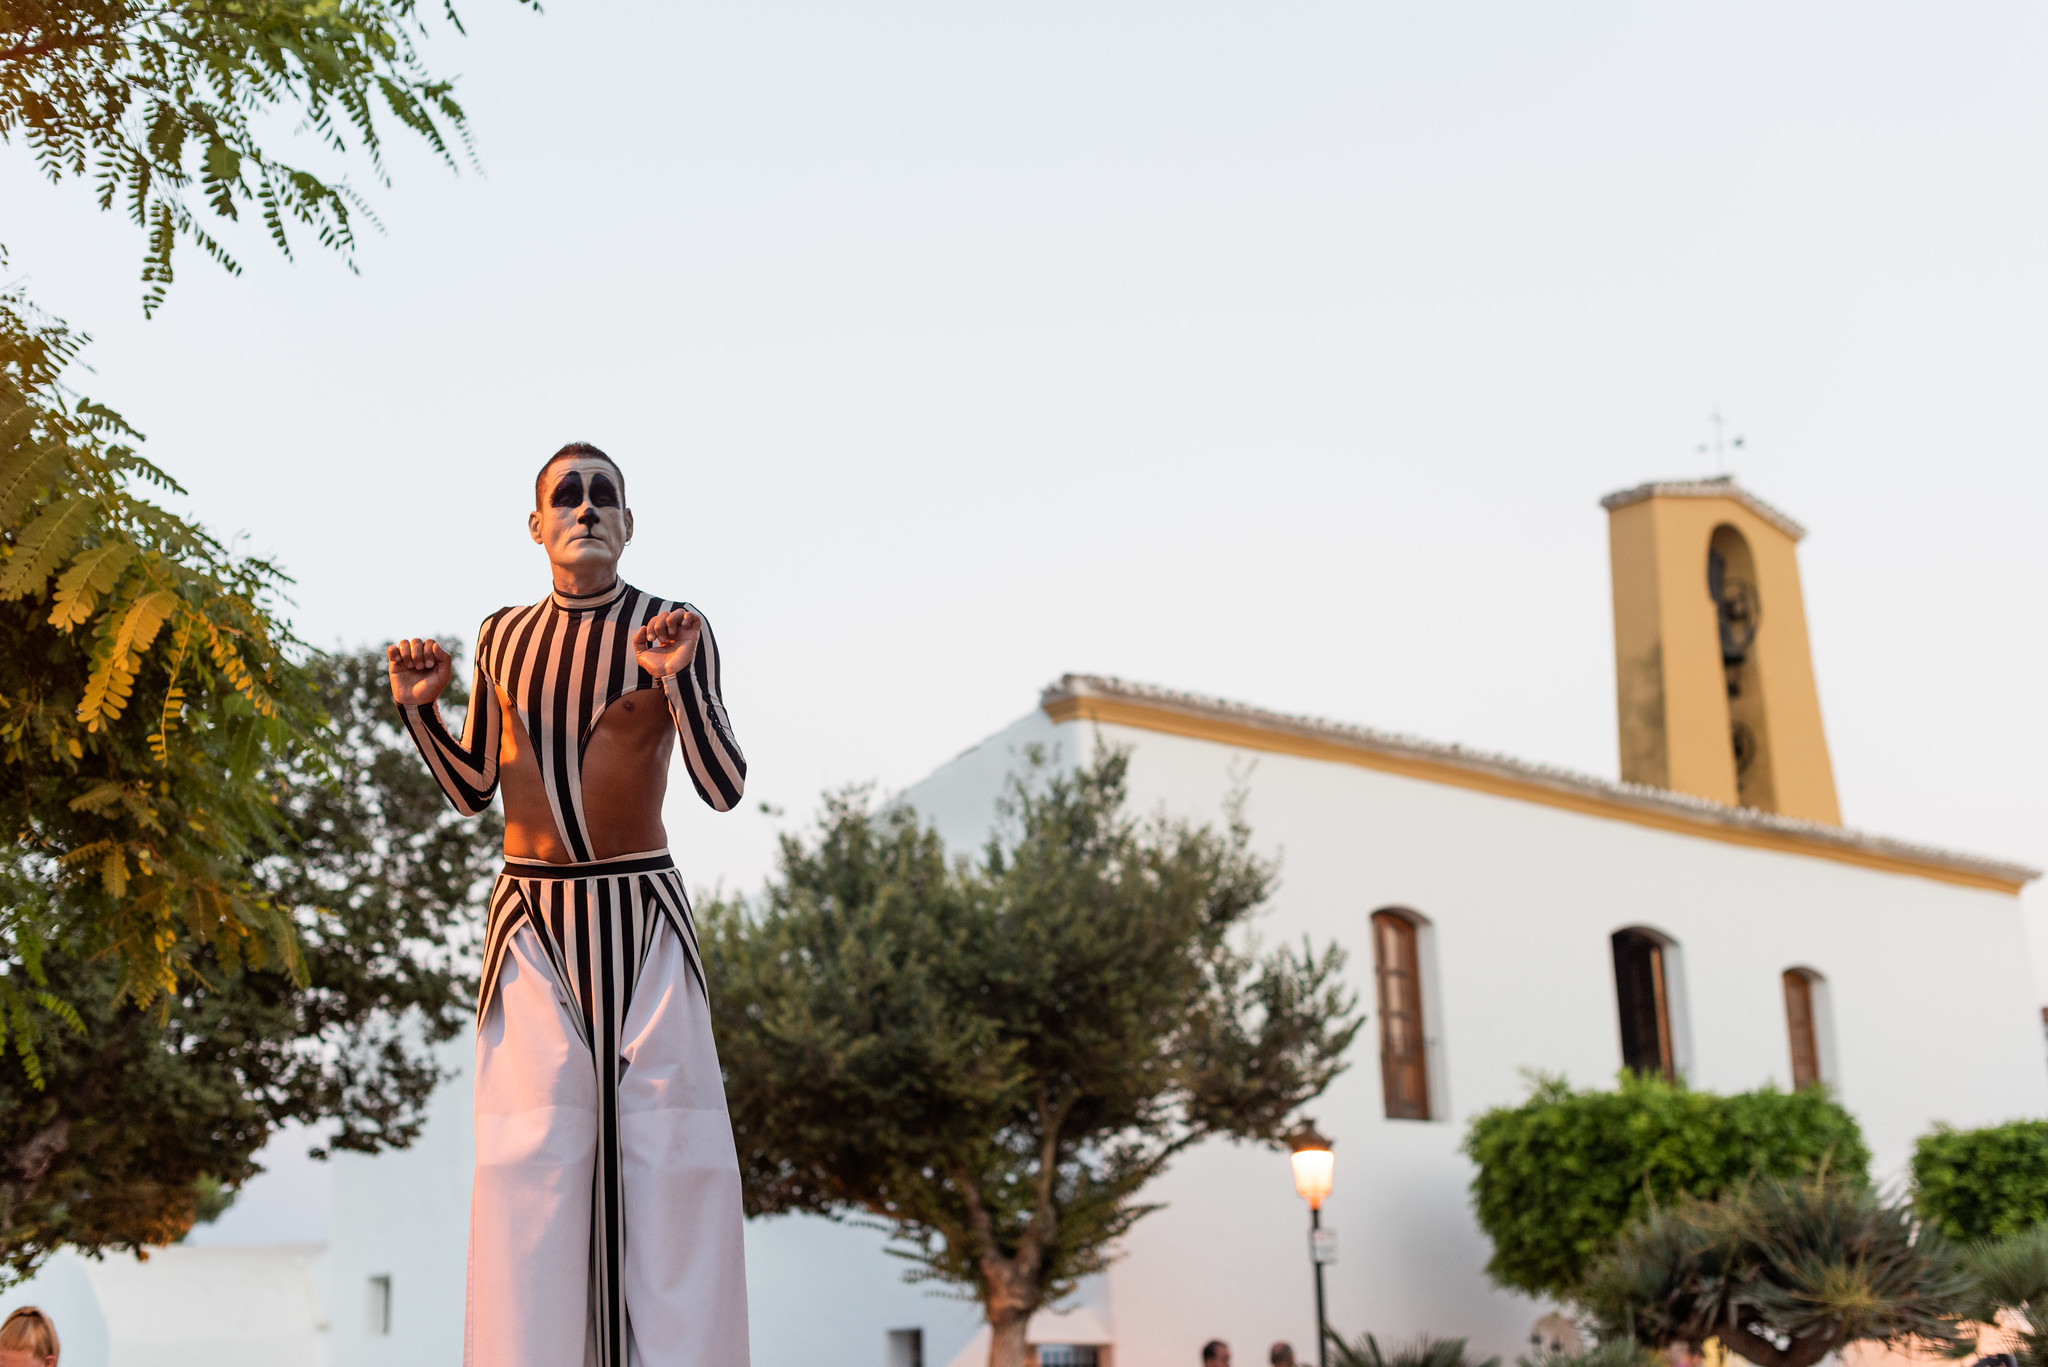 Postcards from Ibiza: Santa Gertrudis